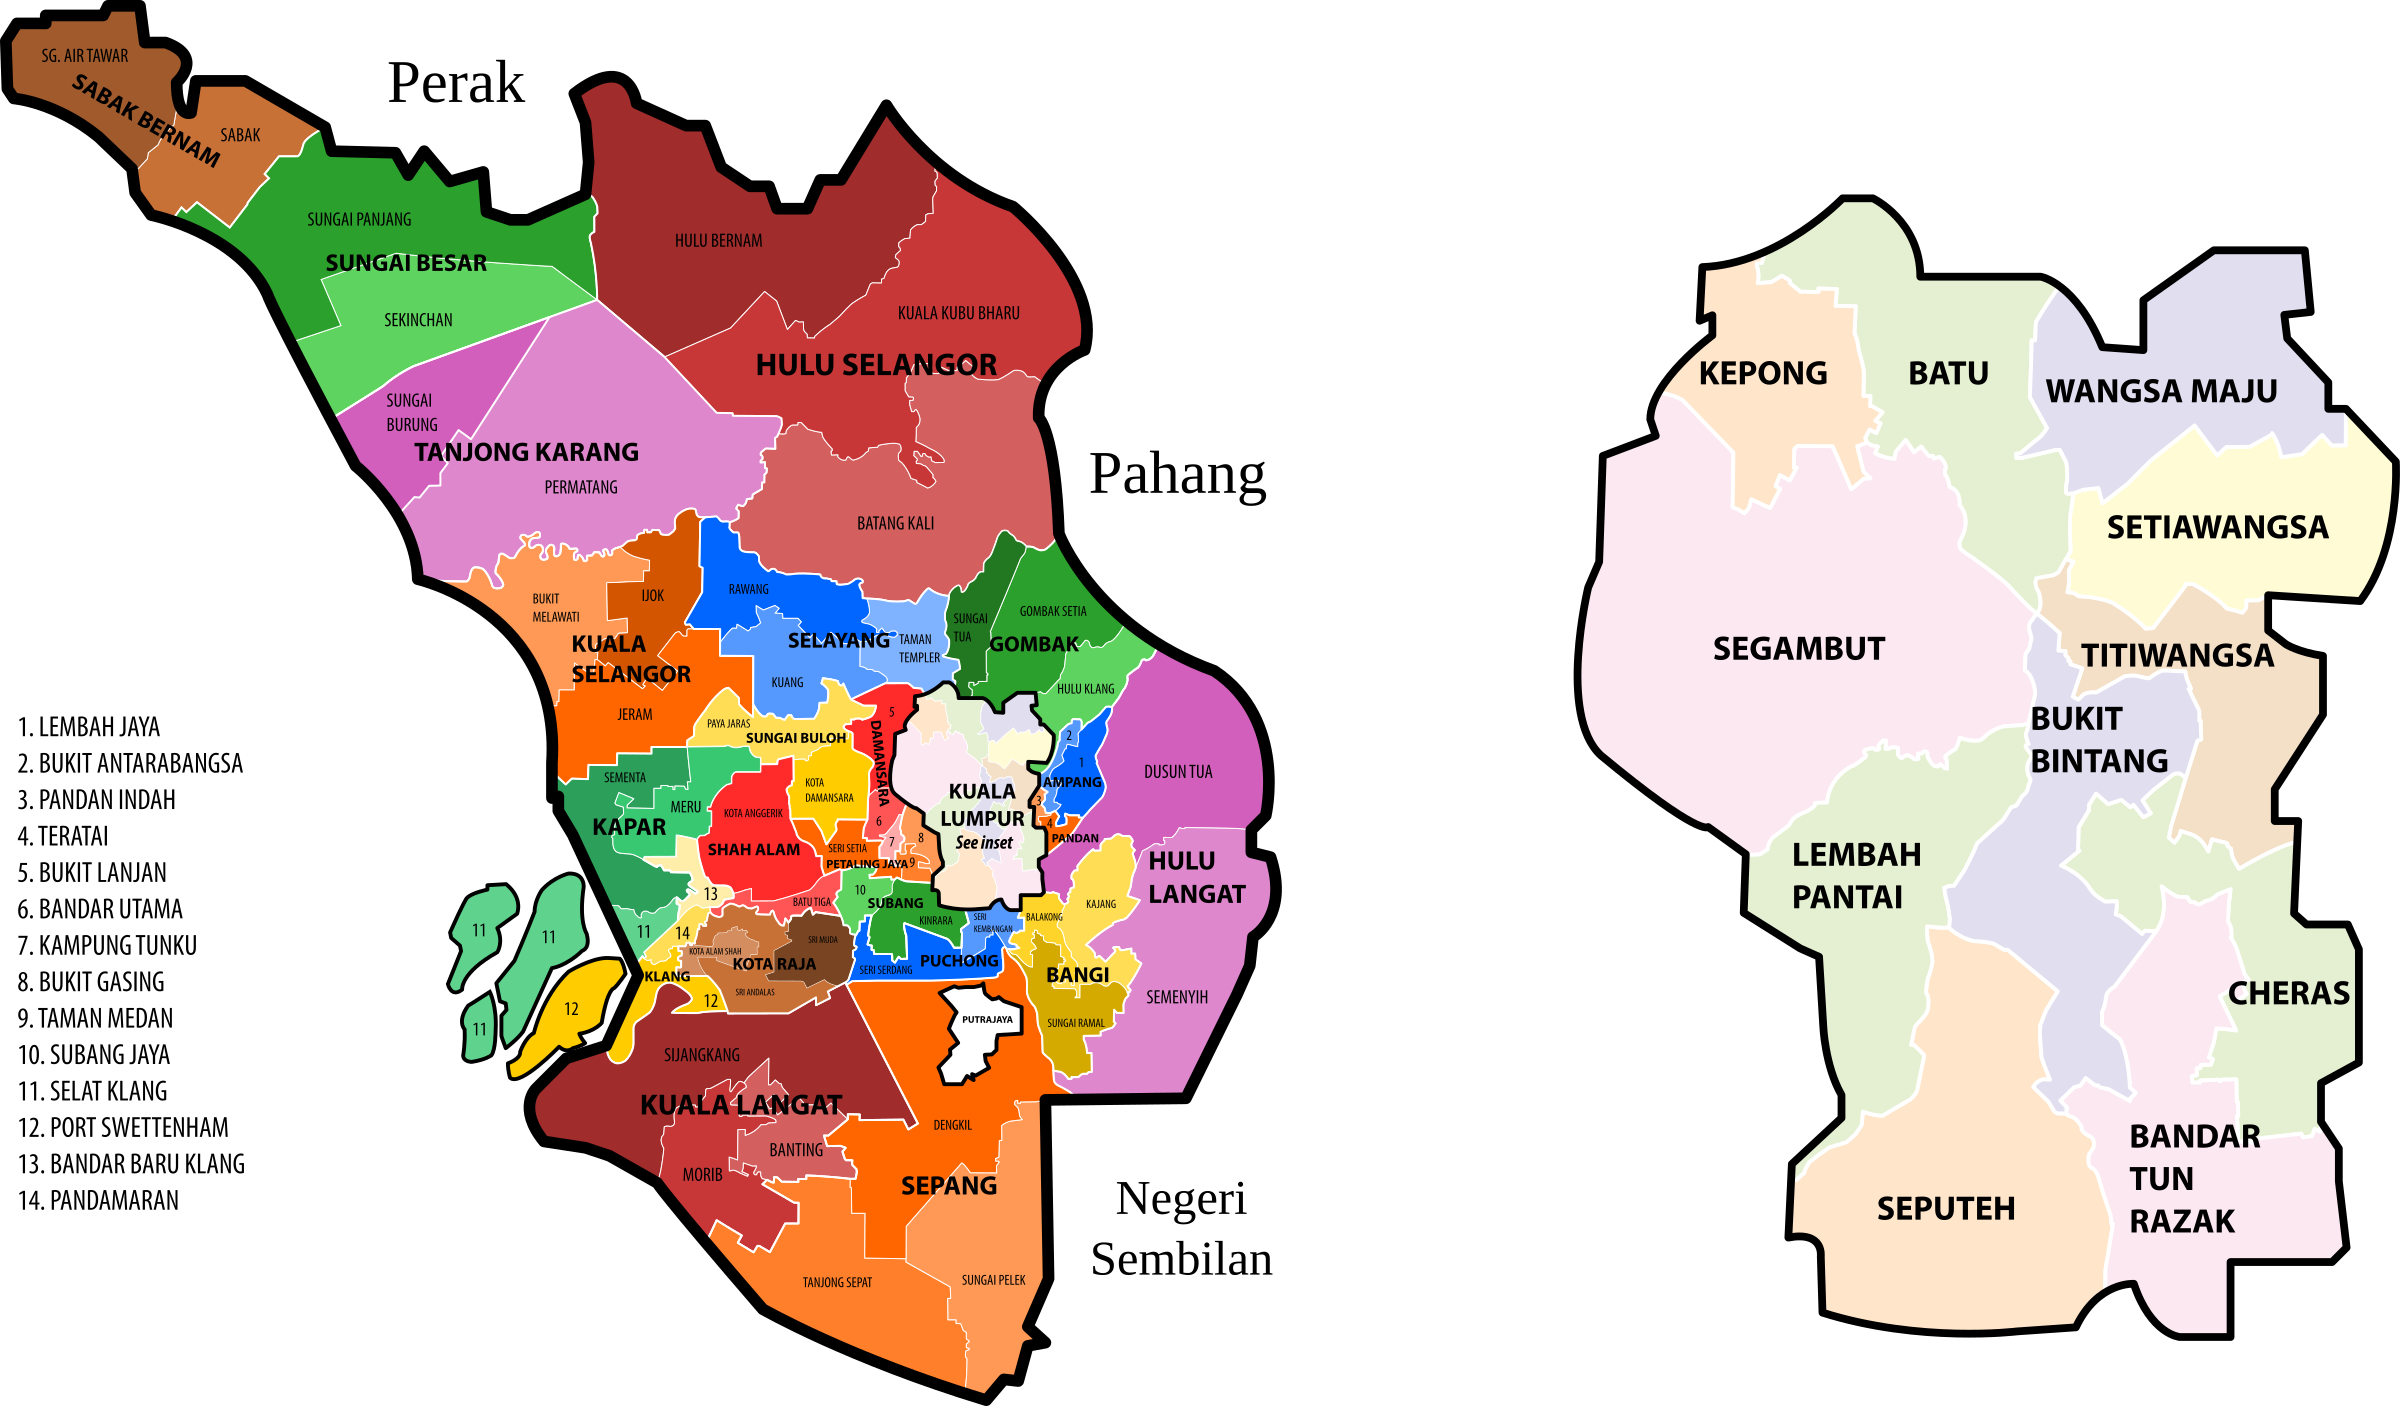 Selangor and Kuala Lumpur new electoral map (March 2017 revision) by derkommander0916